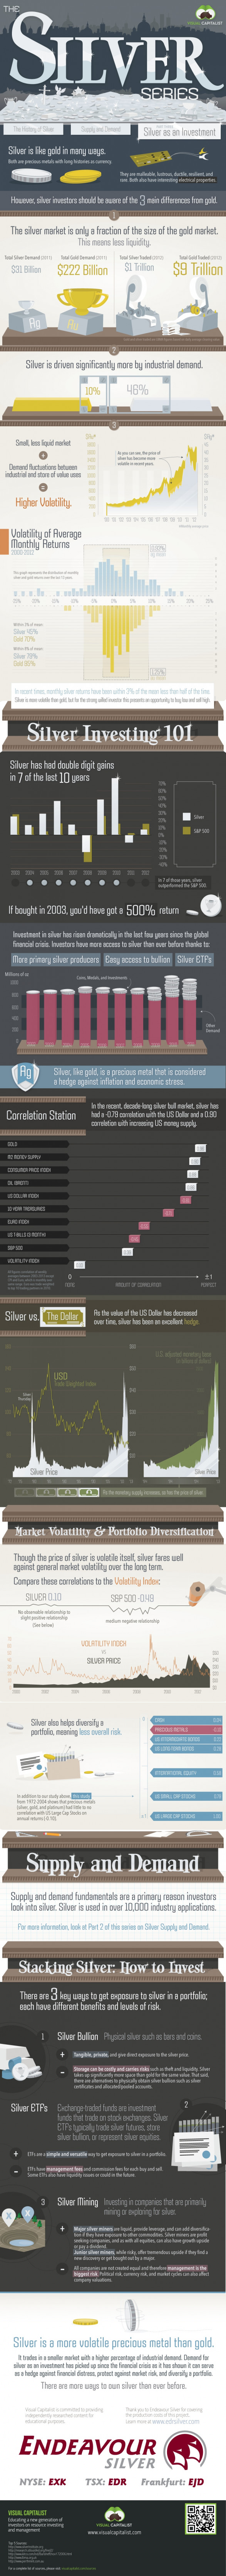 The Silver Series: Silver as an Investment (Part 3)